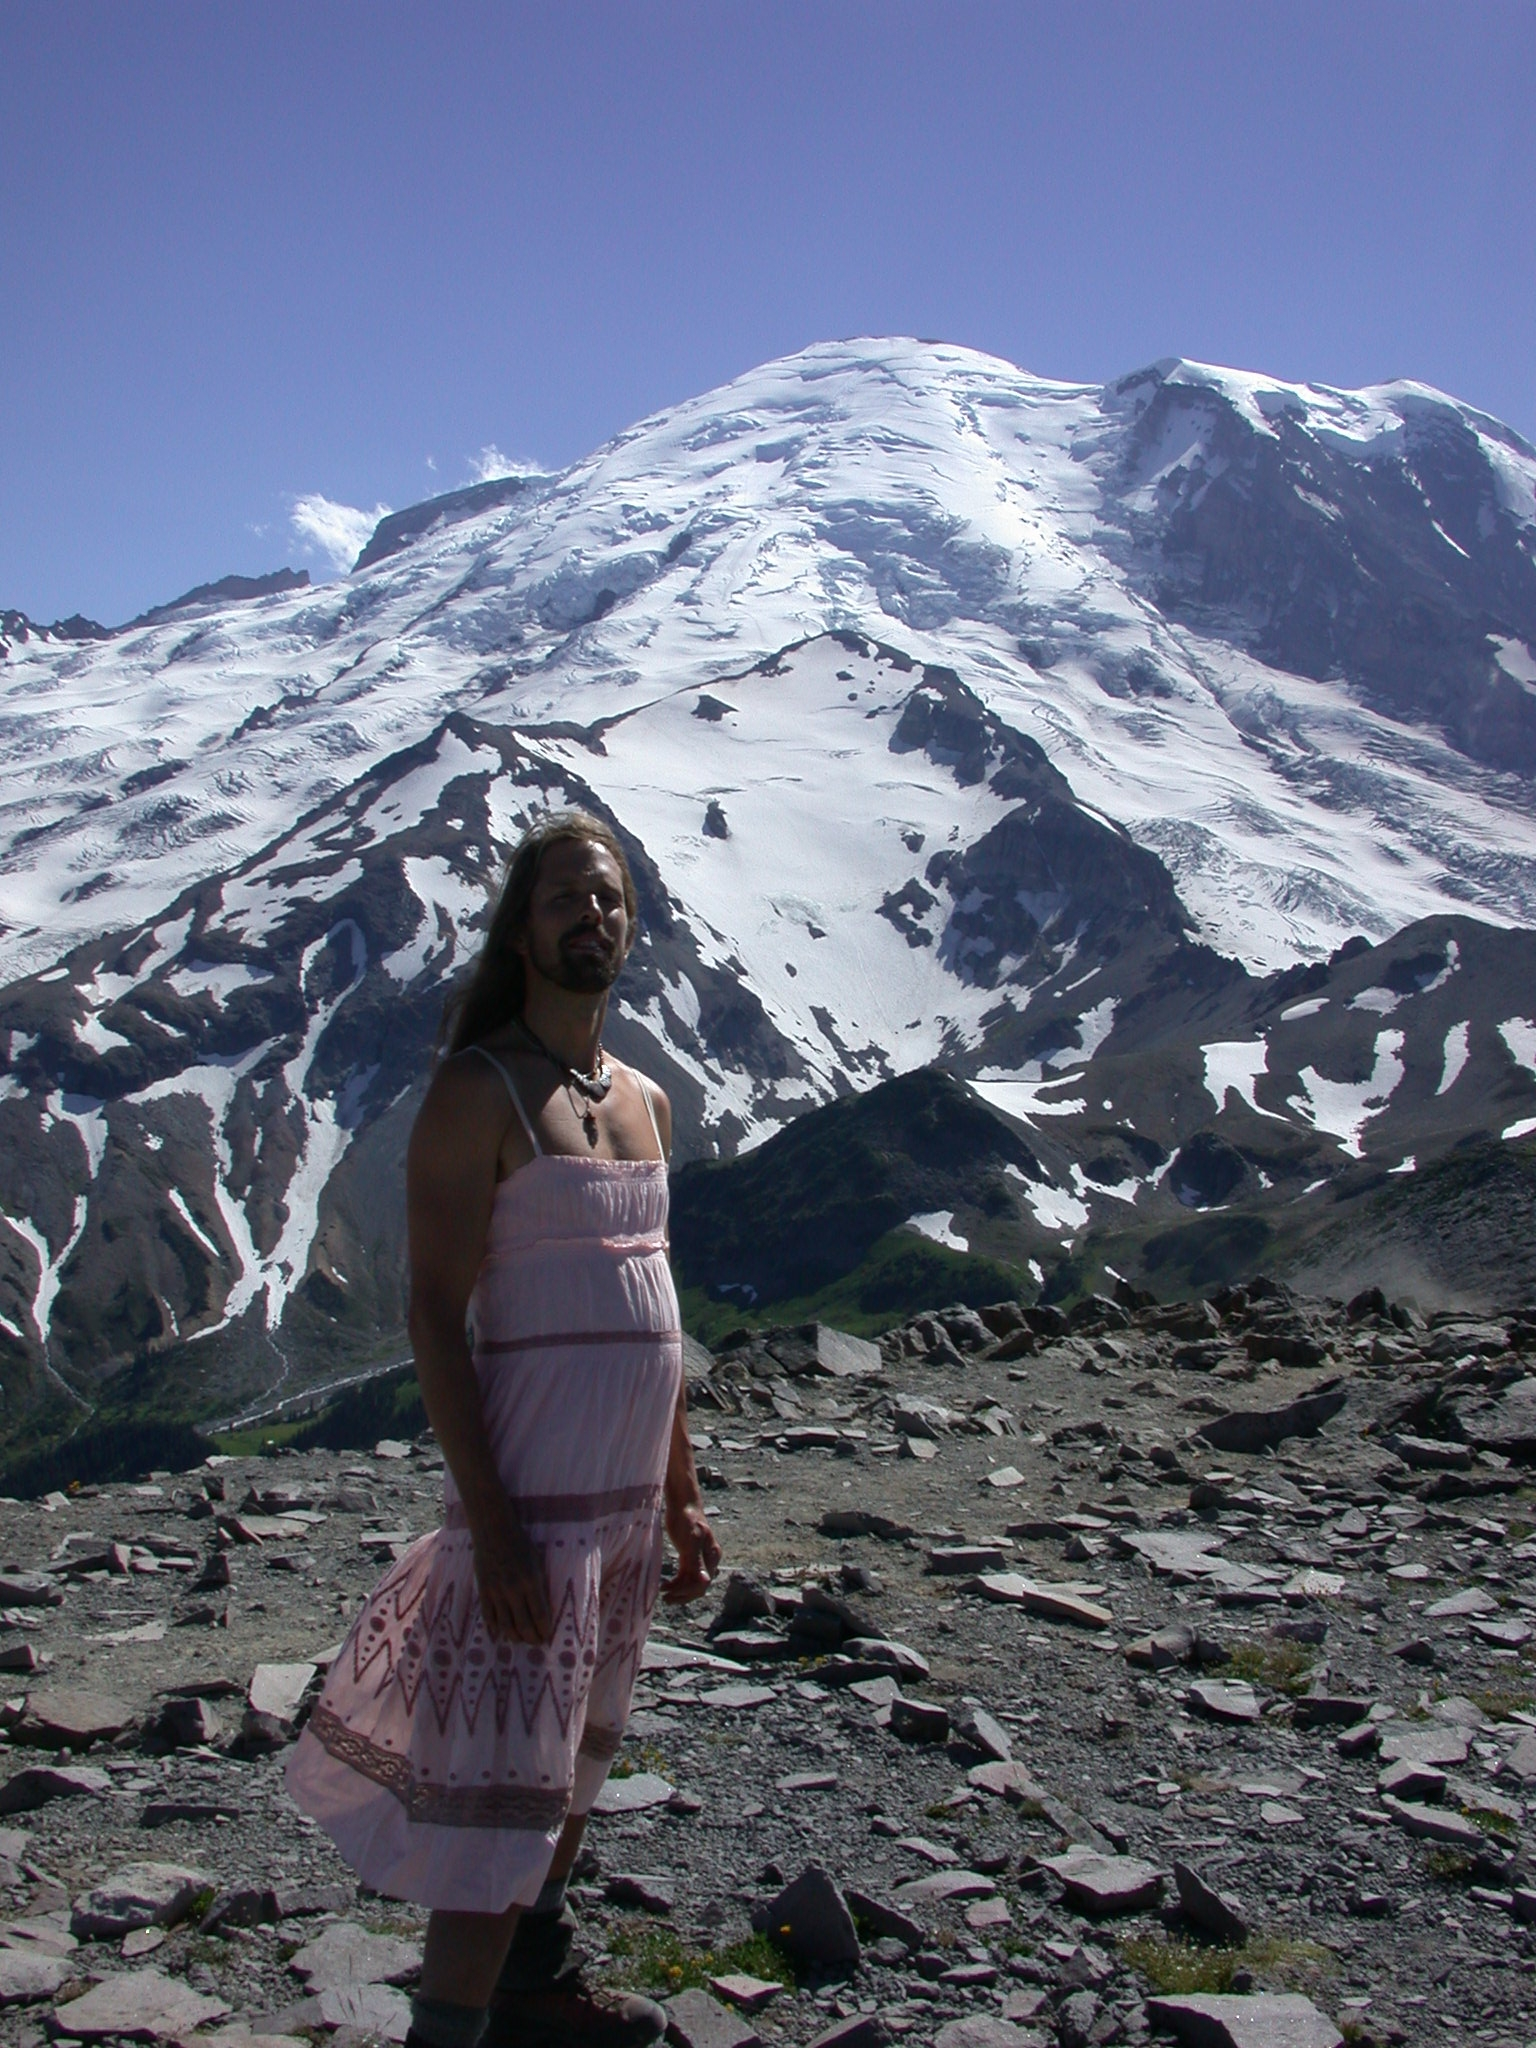 Fruitboy in Dress on Burroughs Peak II With Mount Rainier Summit in Background